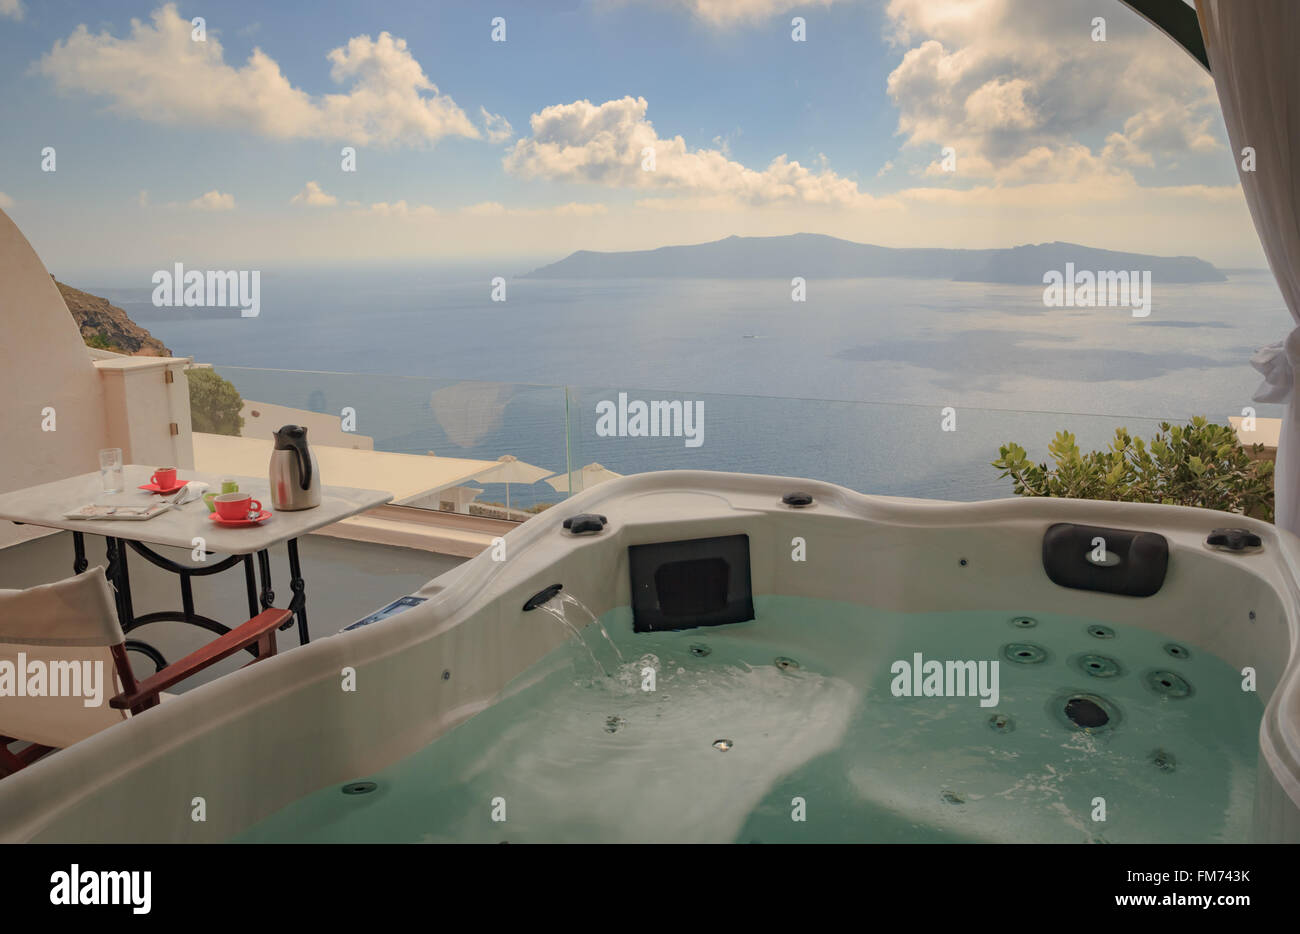 View from hot tub on balcony overlooking the Aegean sea on Santorini Stock Photo